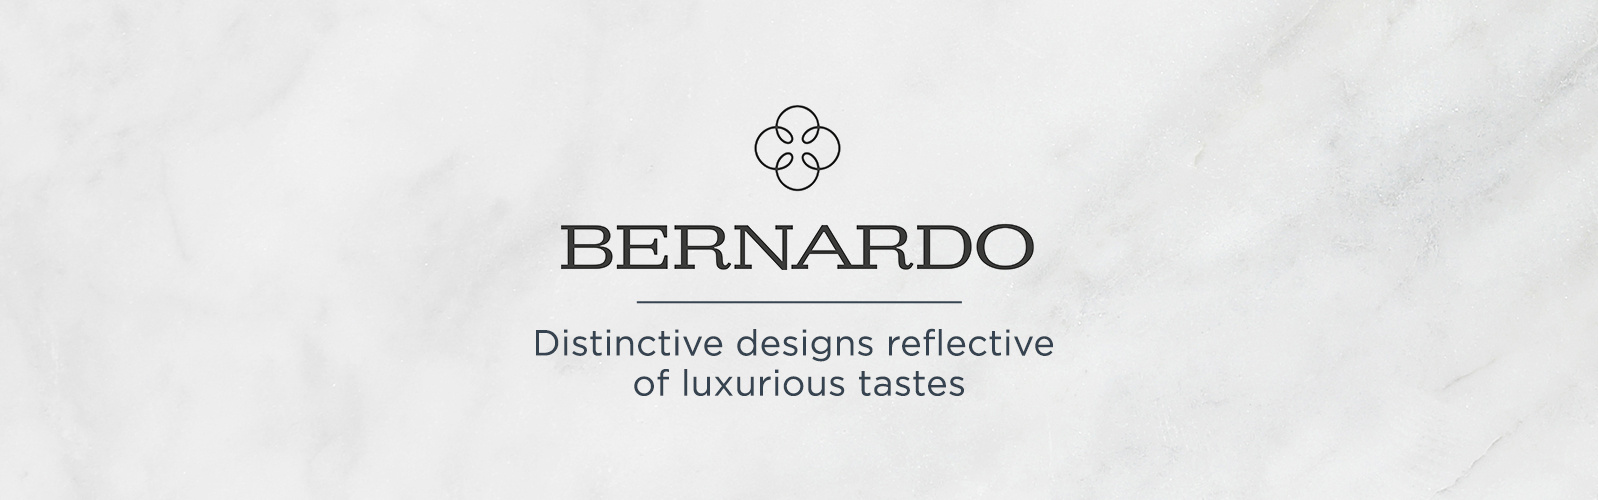 Bernardo — Distinctive designs reflective of luxurious tastes